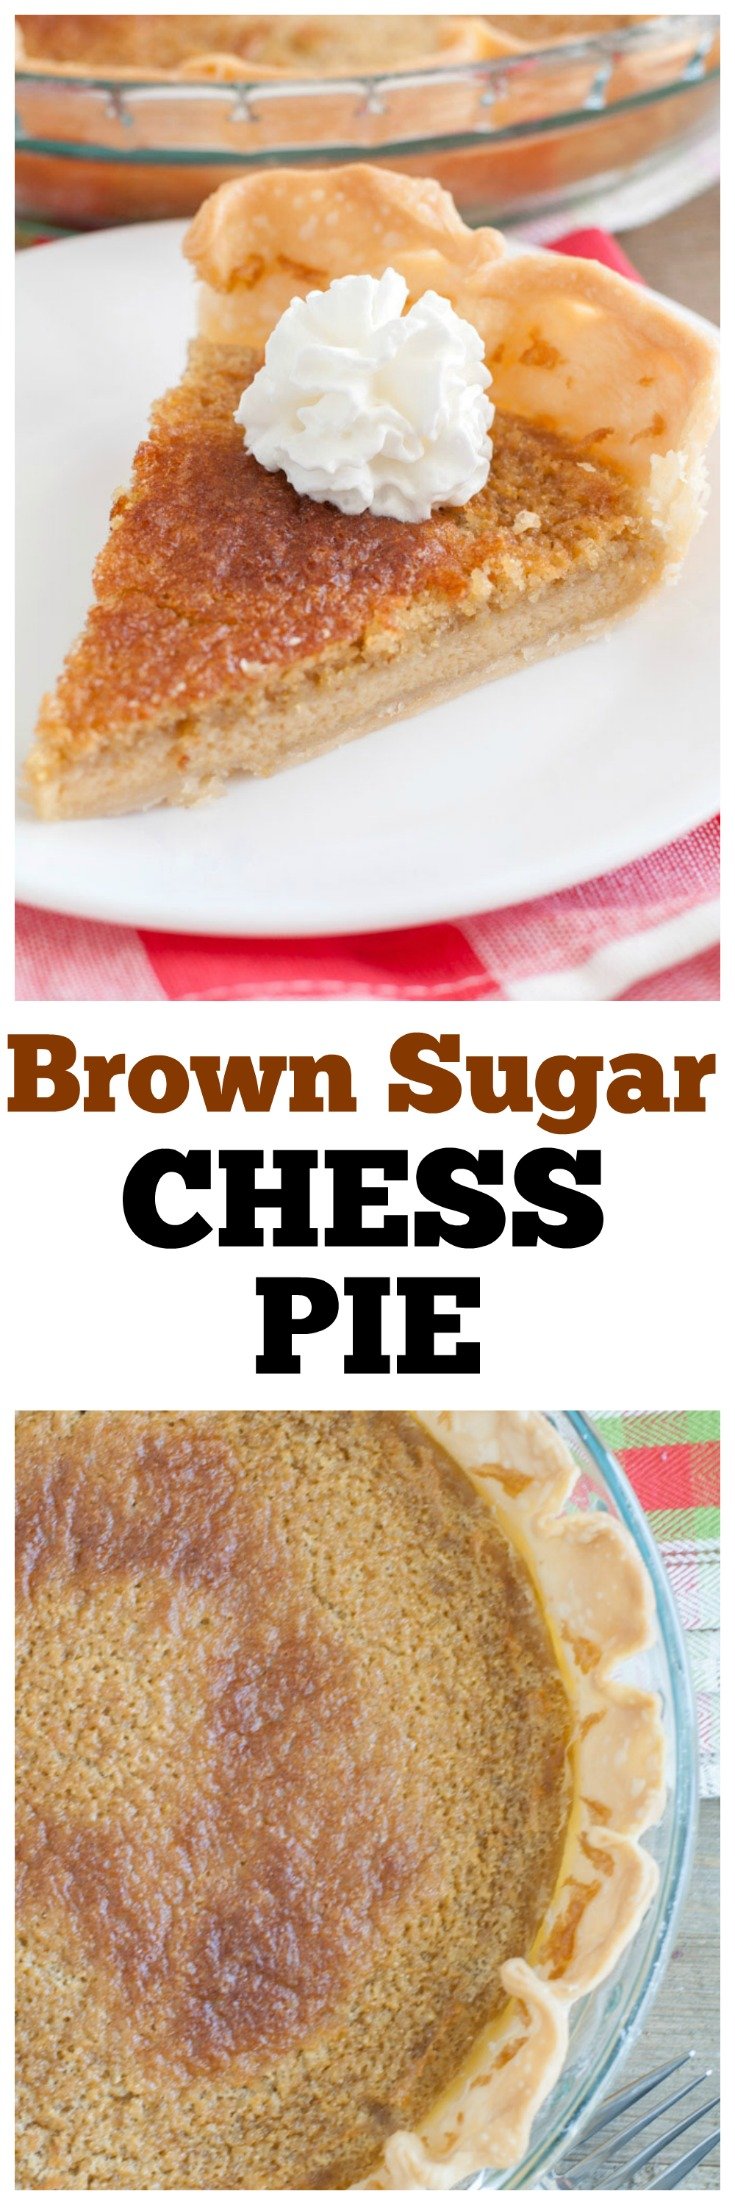 brown sugar chess pie with whipped cream